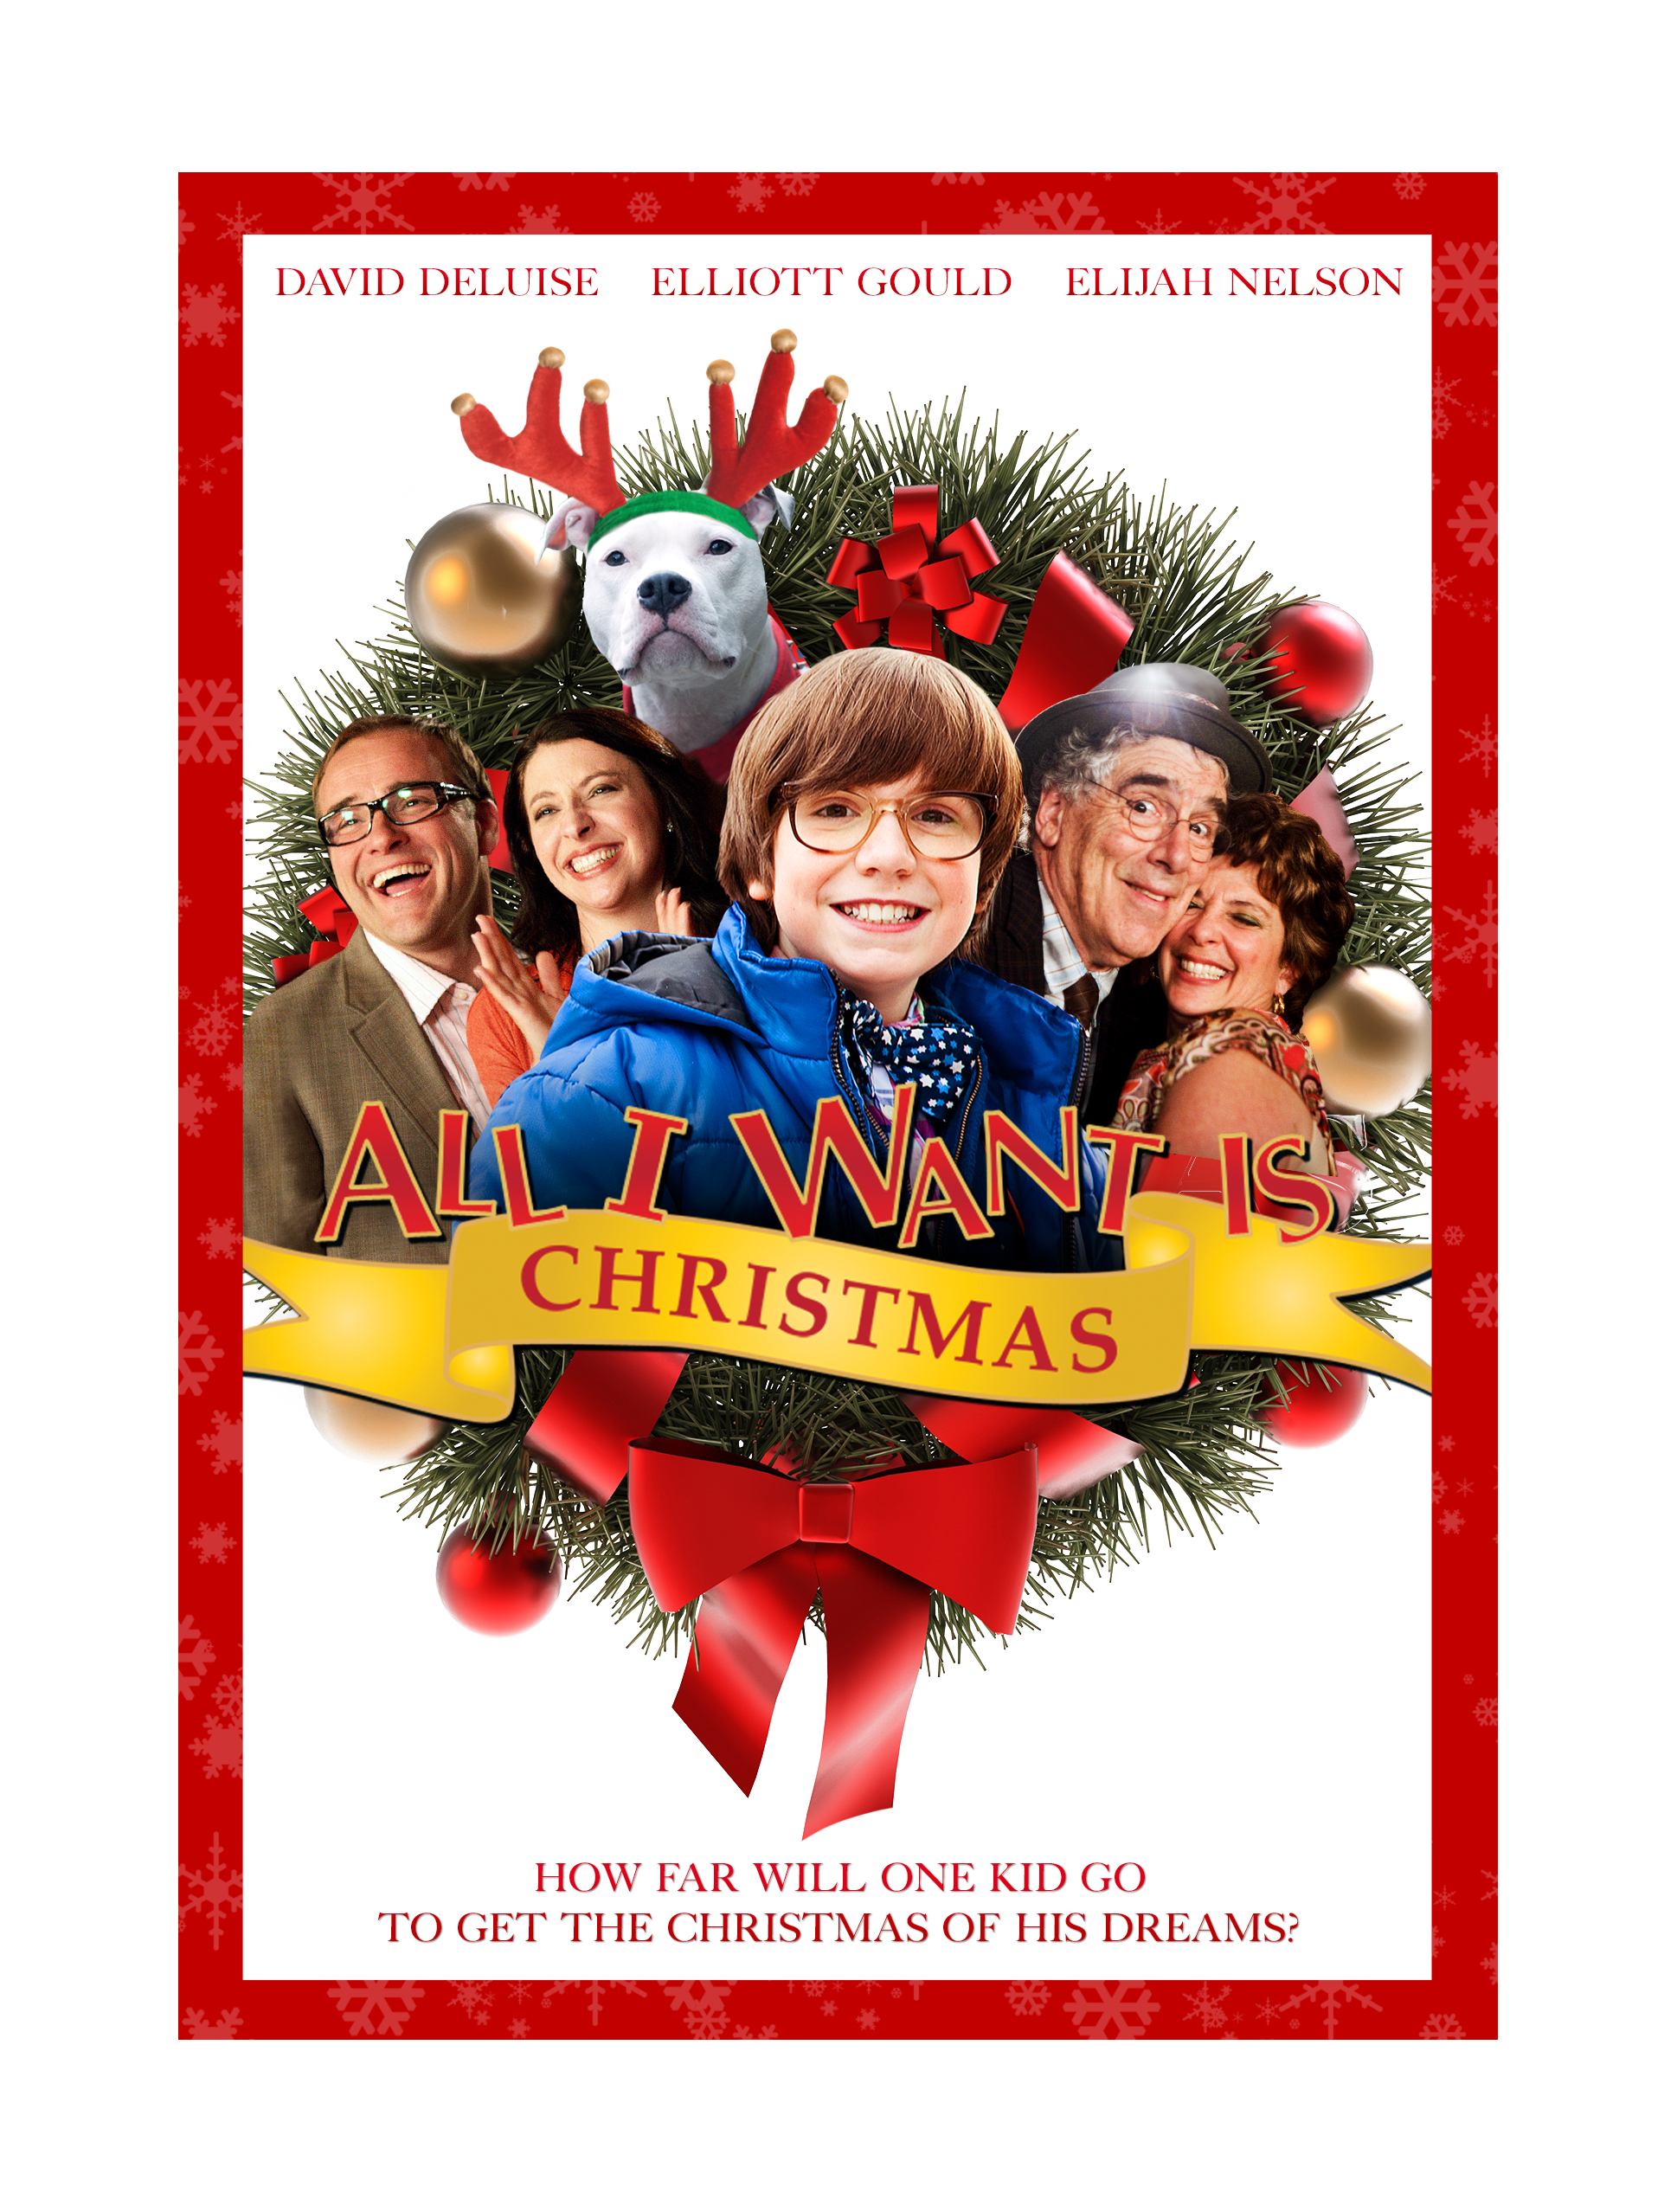 A new family feature to watch at Christmas